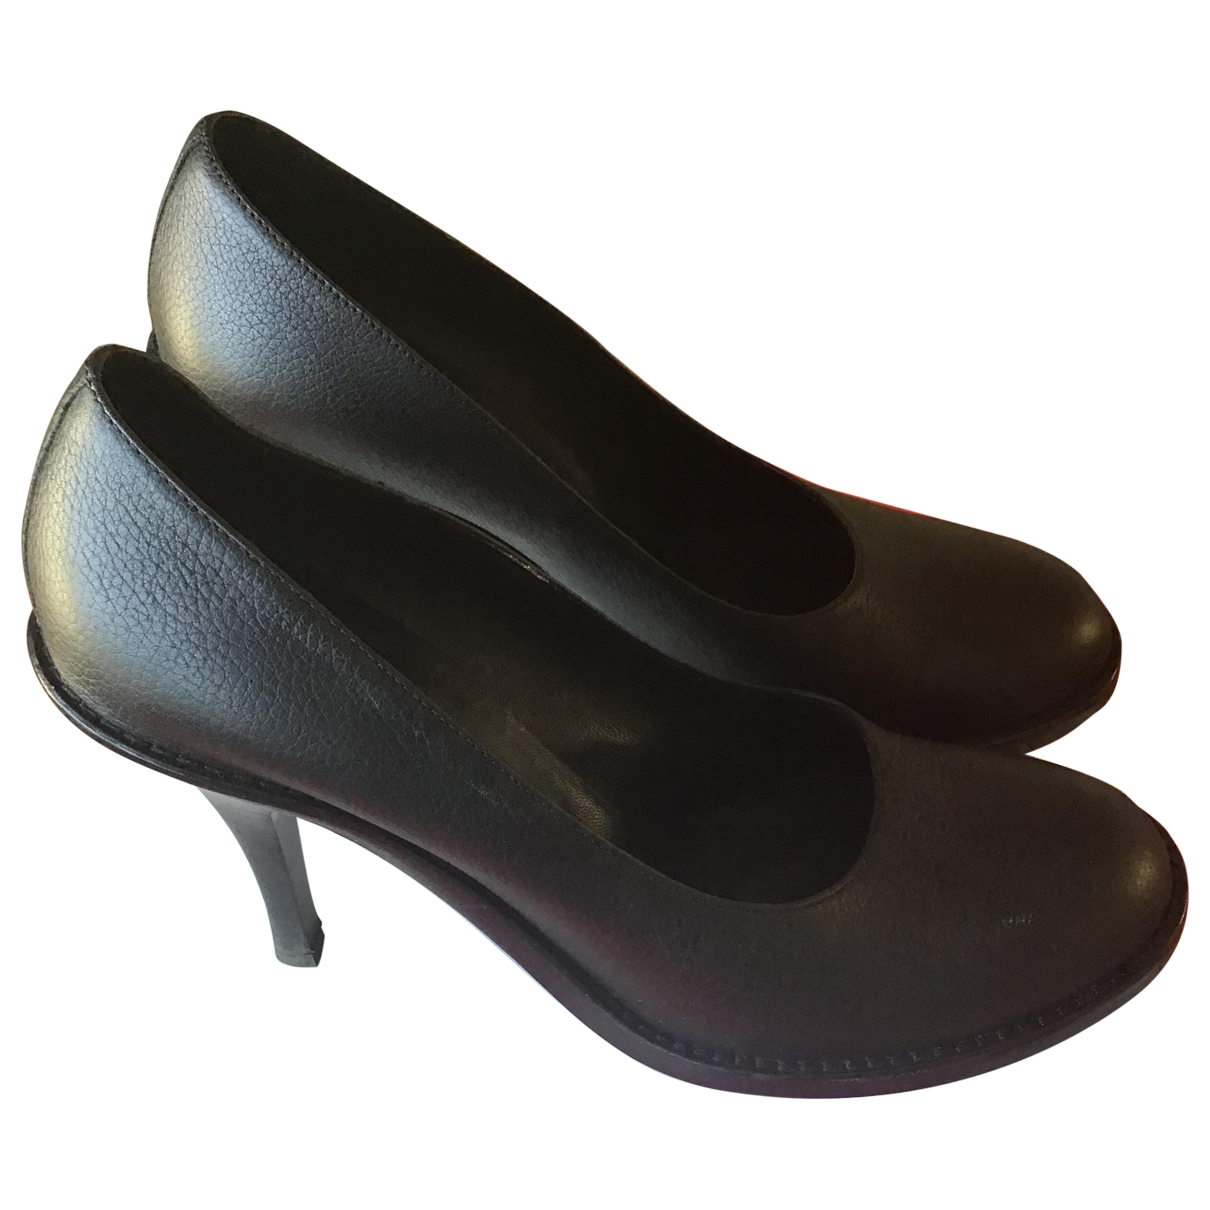 Véronique Branquinho \N Black Leather Heels for Women 40 EU